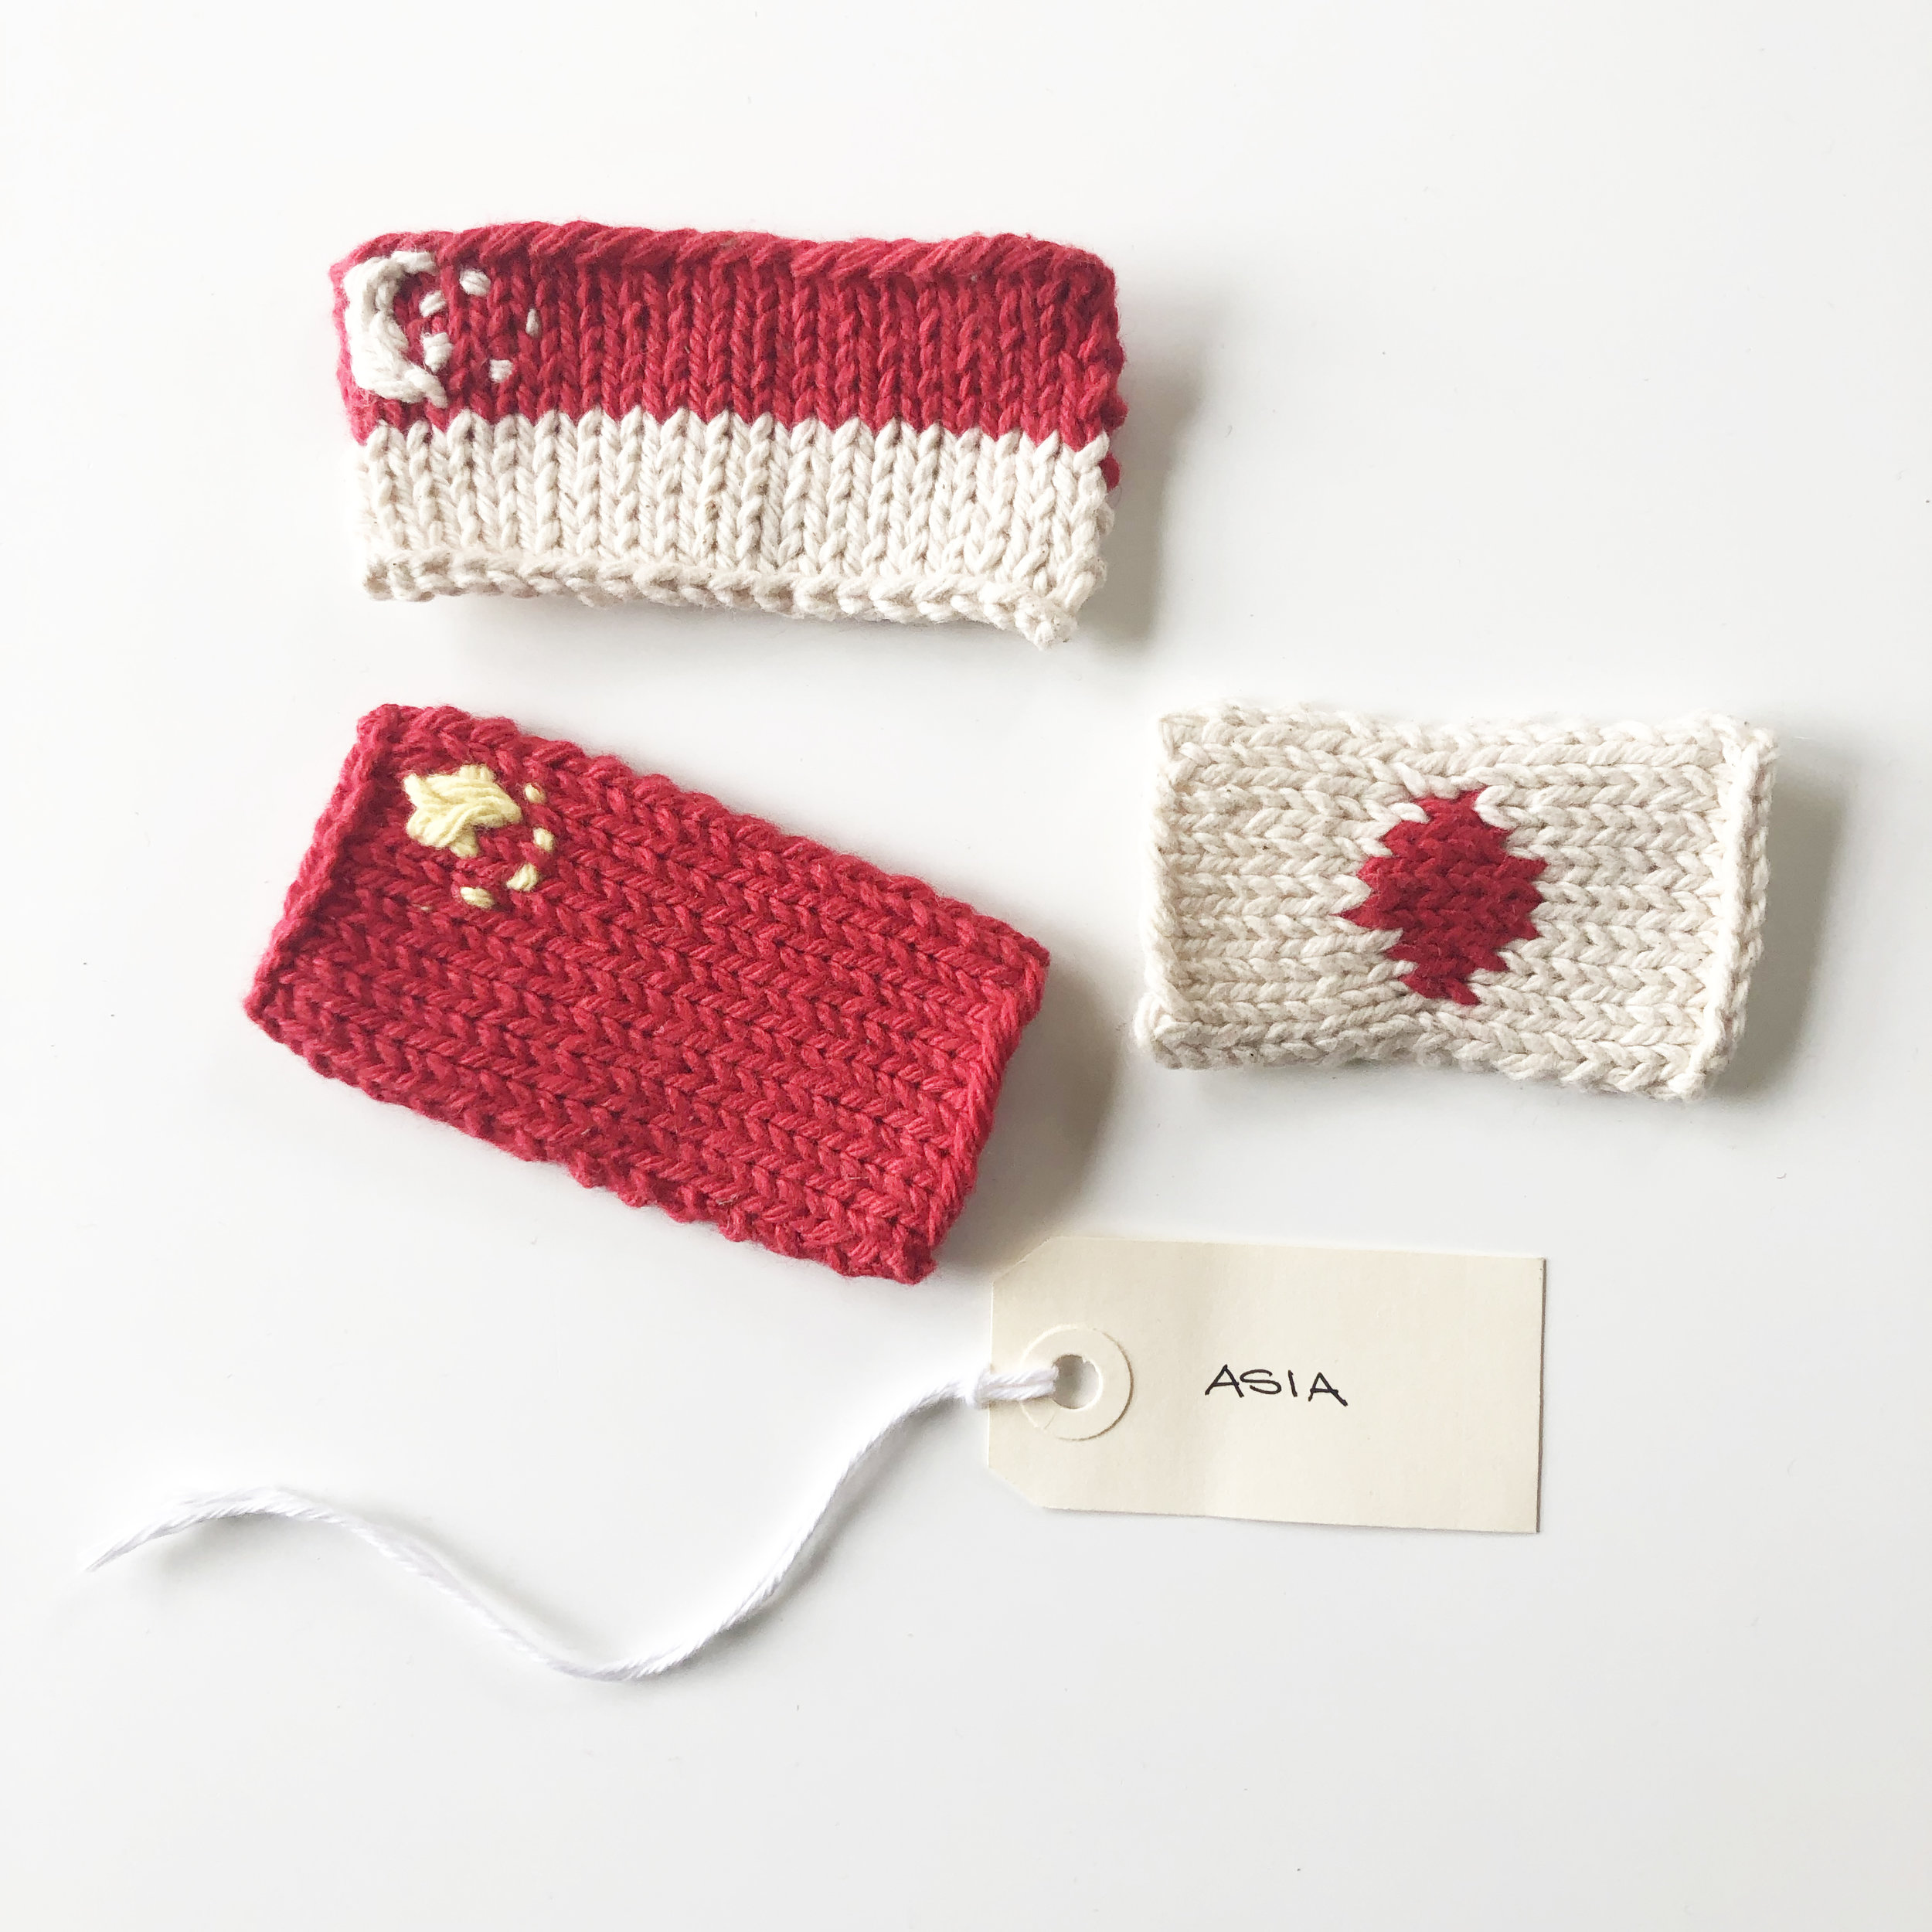 elisemade-knitted-world-flags-asia.jpg